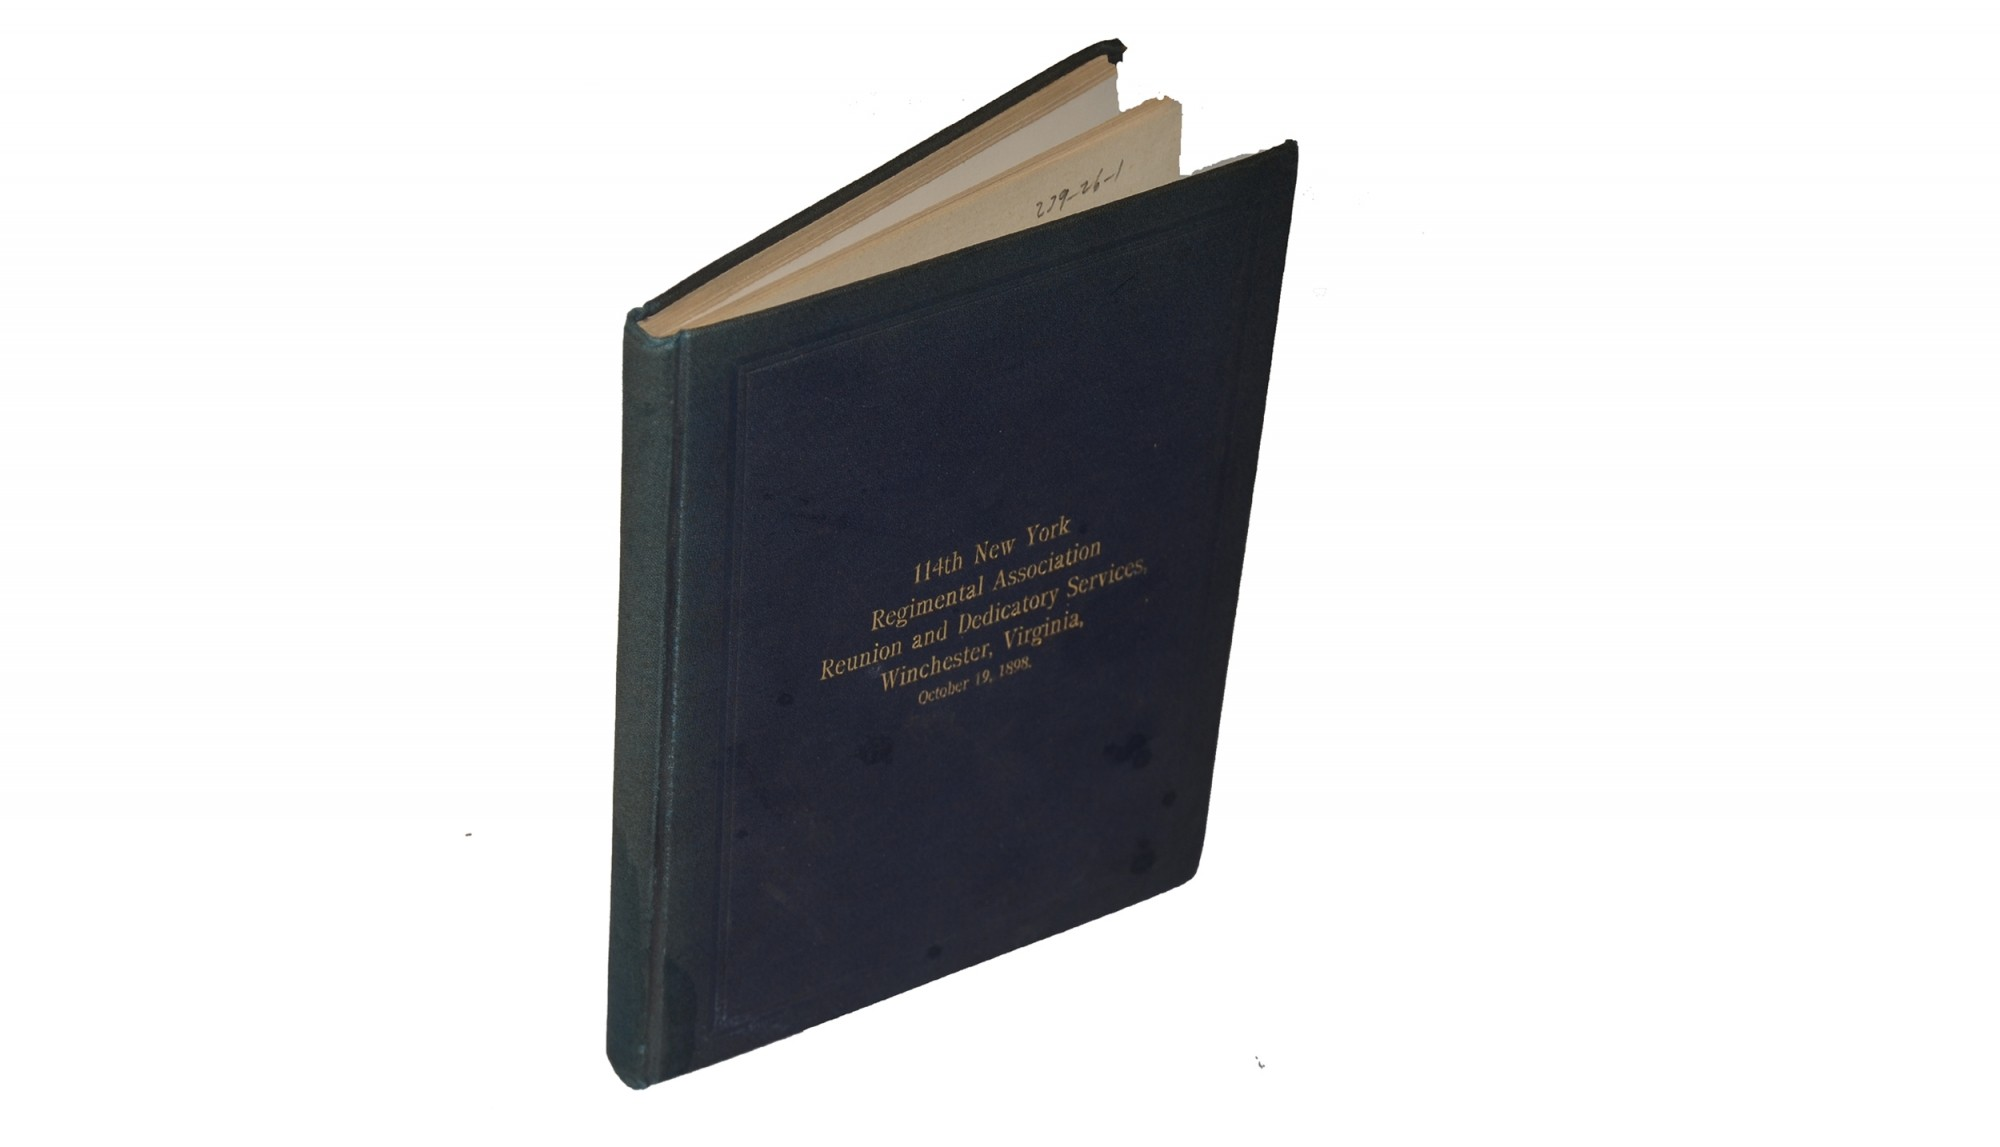 114TH NEW YORK INFANTRY REUNION BOOK FROM 1898